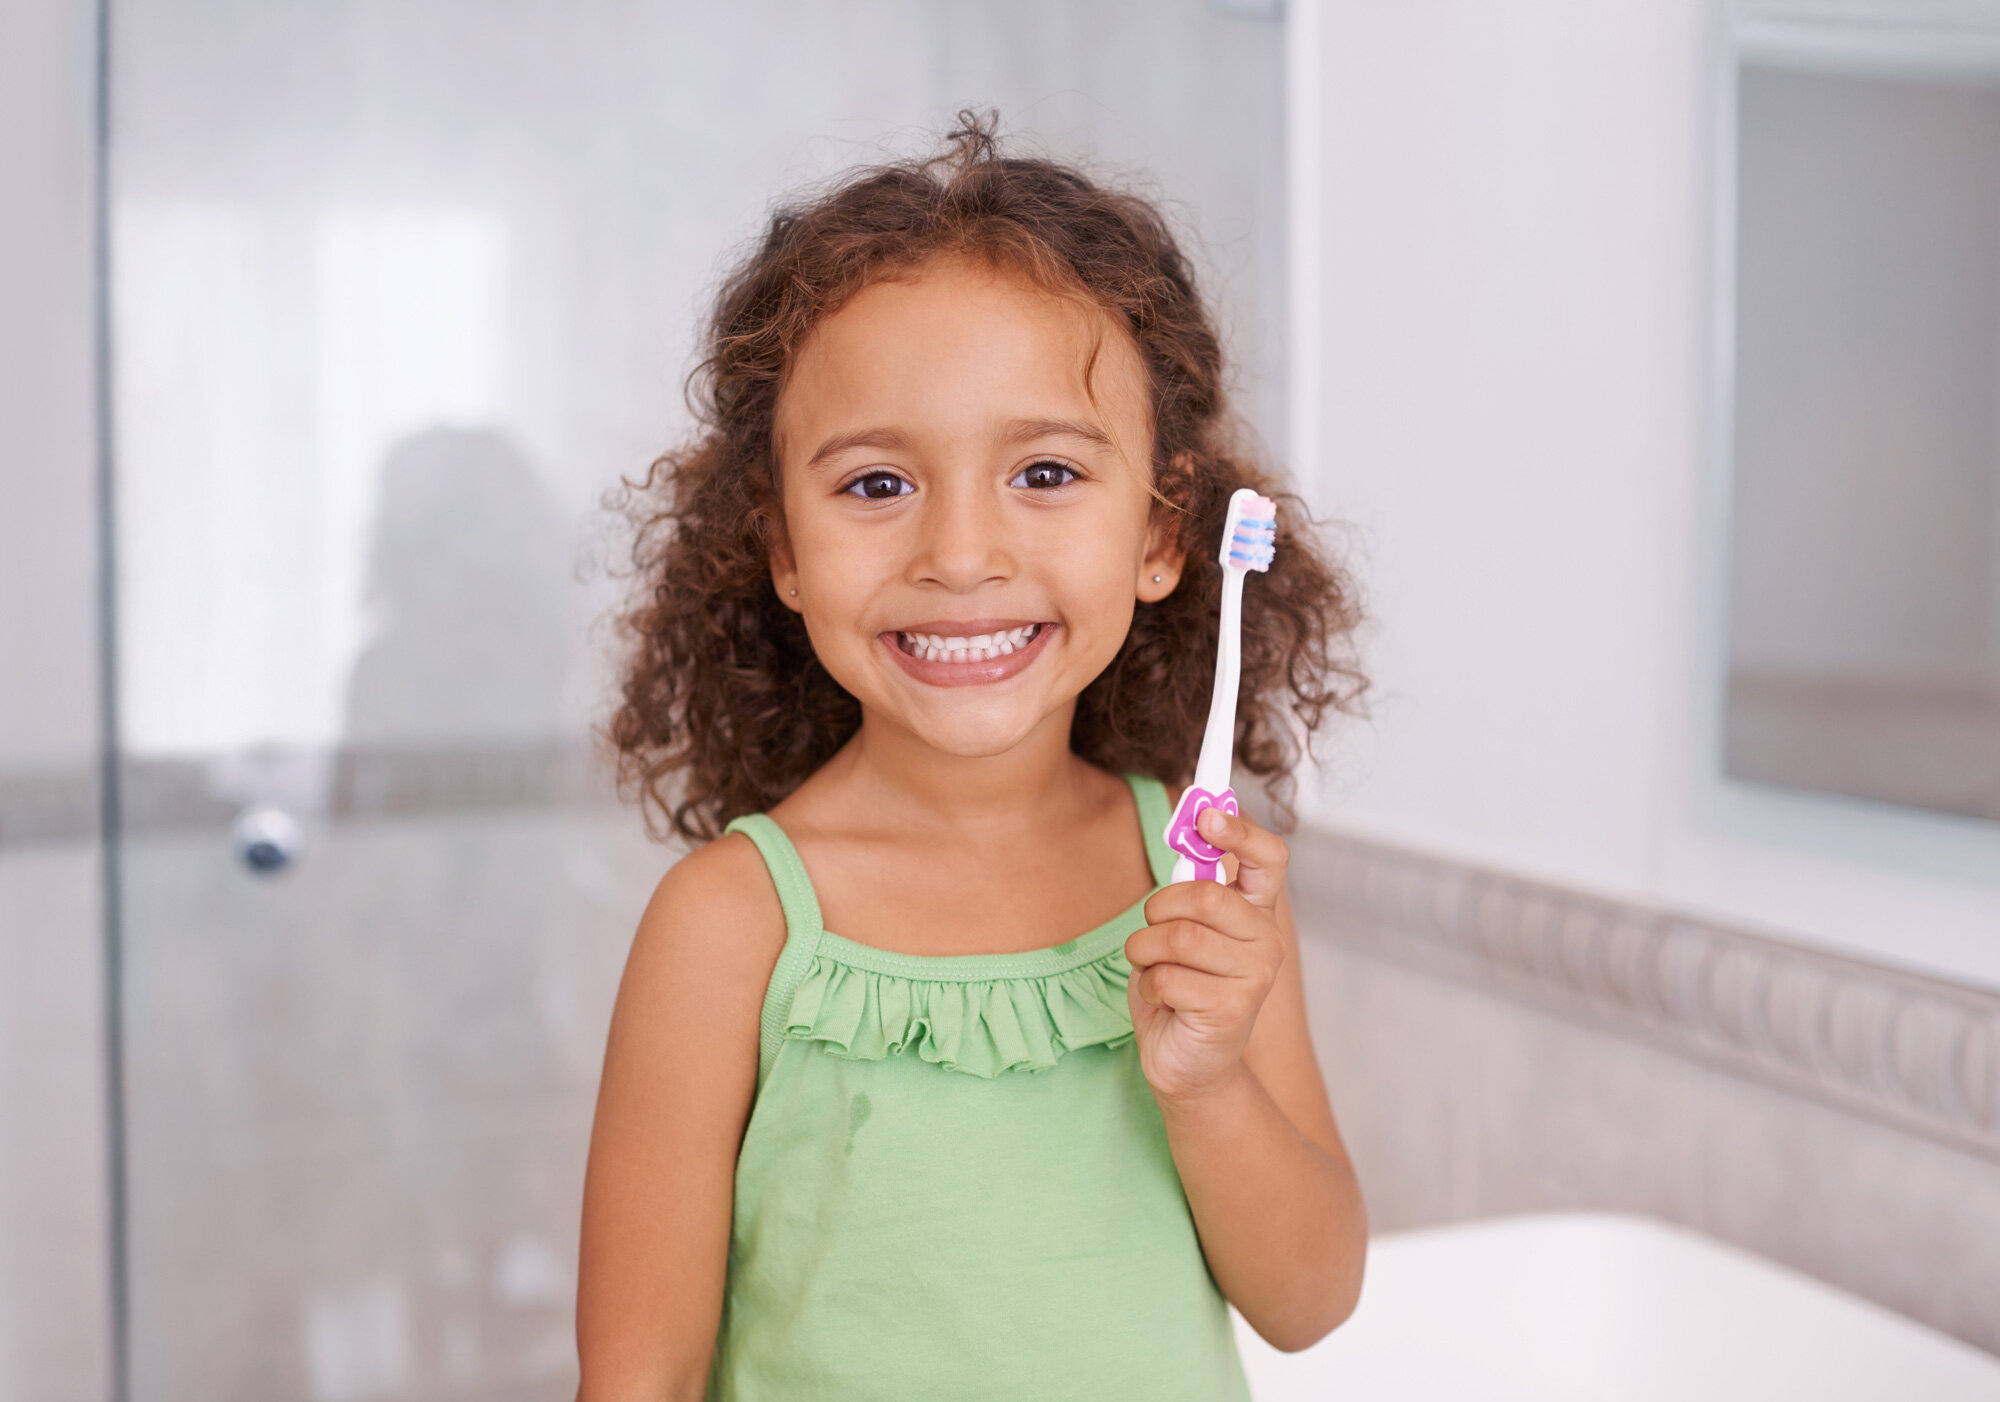 Children's Treatments - At Home Counties Clinics we offer free check-ups for children up to the age of 16 provided that their parent or guardian is a registered active patient at the clinic.Our popular 11+ Oral care Plan is perfect for older children who need some expert guidance on dietary guidelines and oral health care to make sure they keep their teeth and gums in optimal health. This appointment also includes a detailed scale and polish and a preventative fluoride tooth treatment.Examination • FreeHygiene visit • £32Extractions • from £30Fillings • from £2011+ Oral care plan • £58